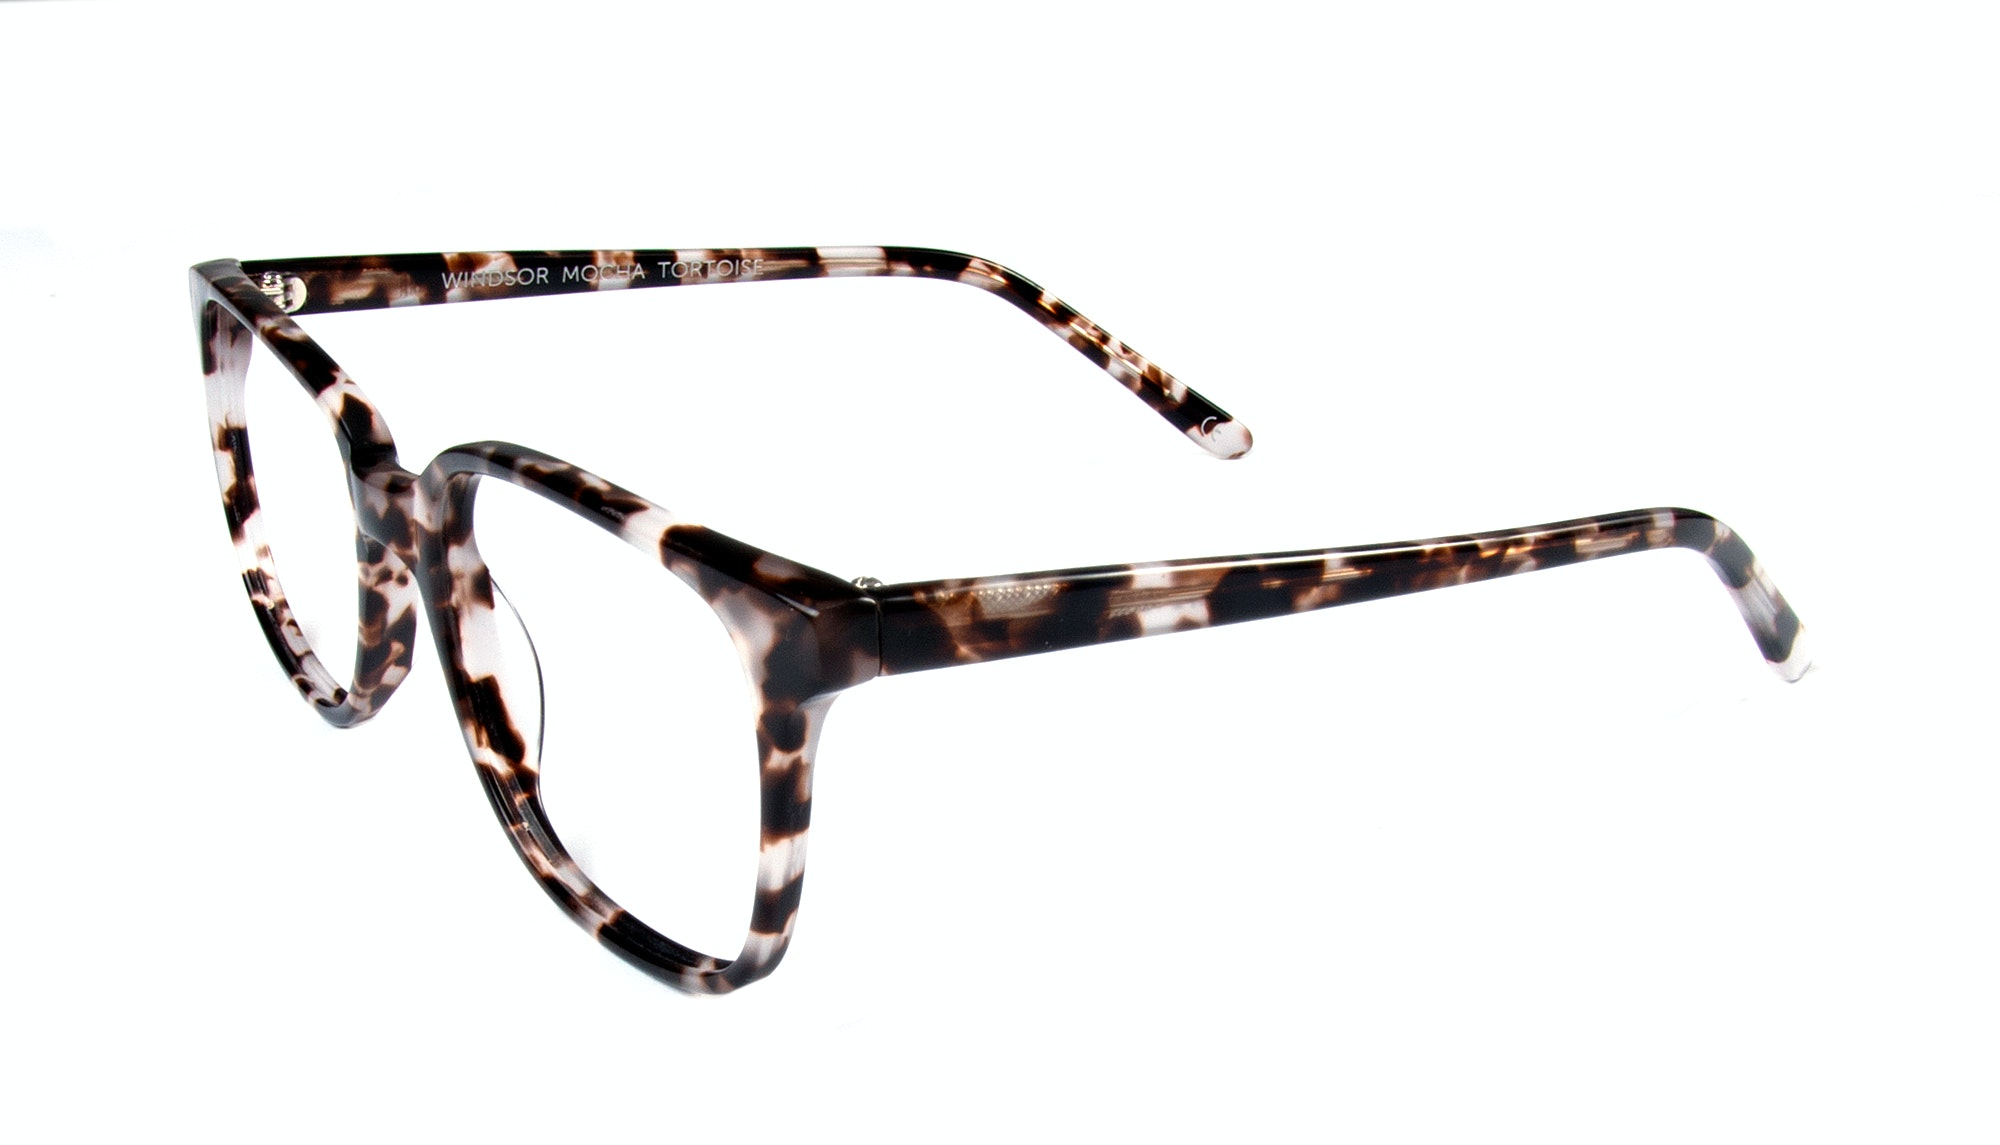 Affordable Fashion Glasses Rectangle Square Eyeglasses Women Windsor Mocha Tortoise Tilt